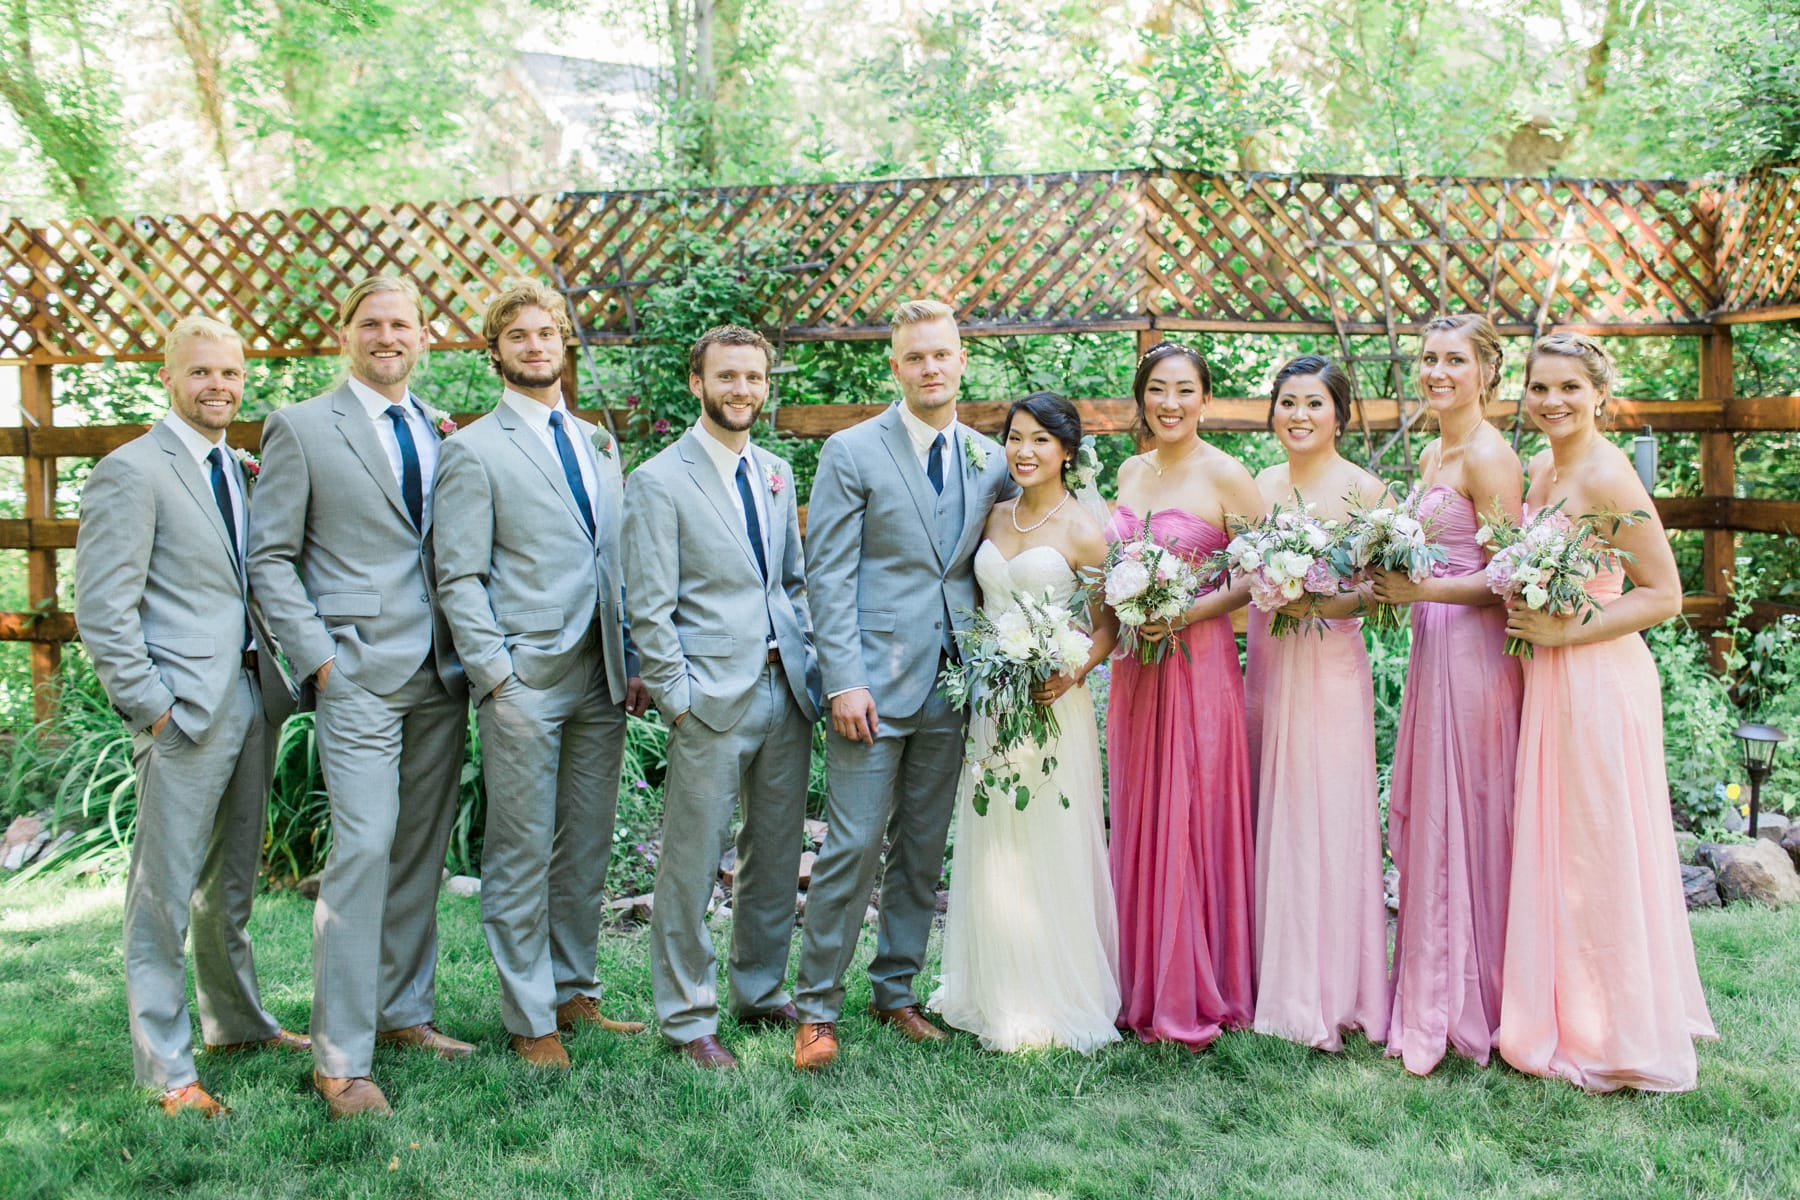 Emigration Canyon Wedding Featuring Patience Wedding Dress - Maggie Bride Hoa